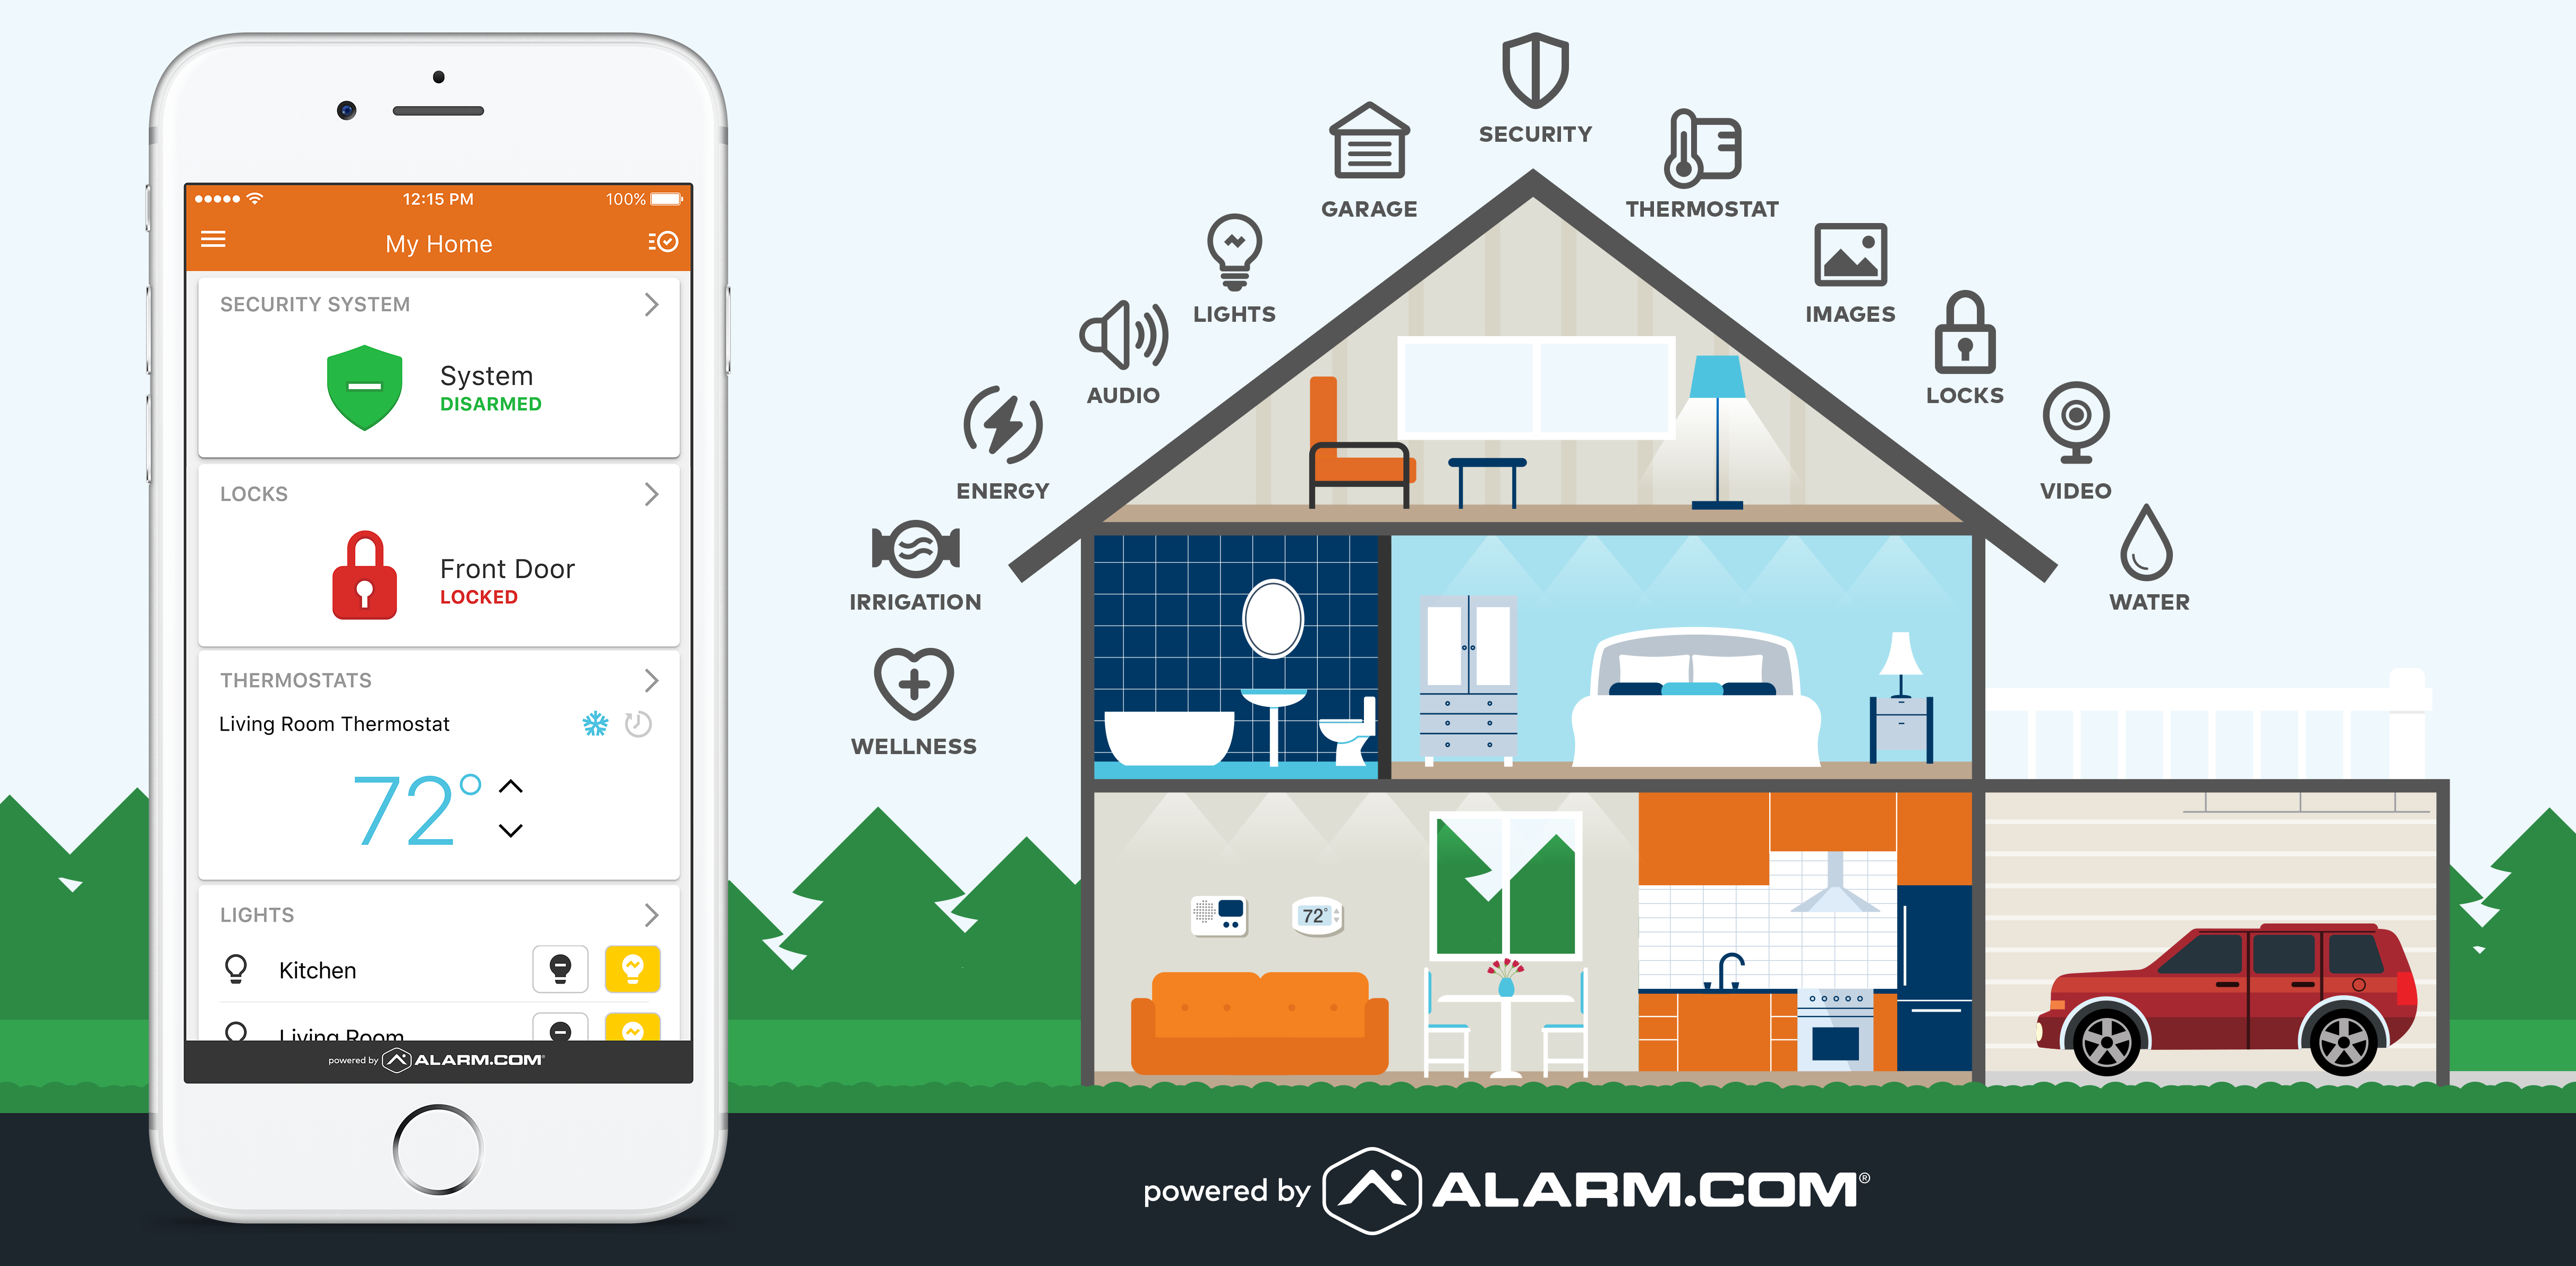 Boulder Mobile Locksmiths, security, safety, automating your thermostat